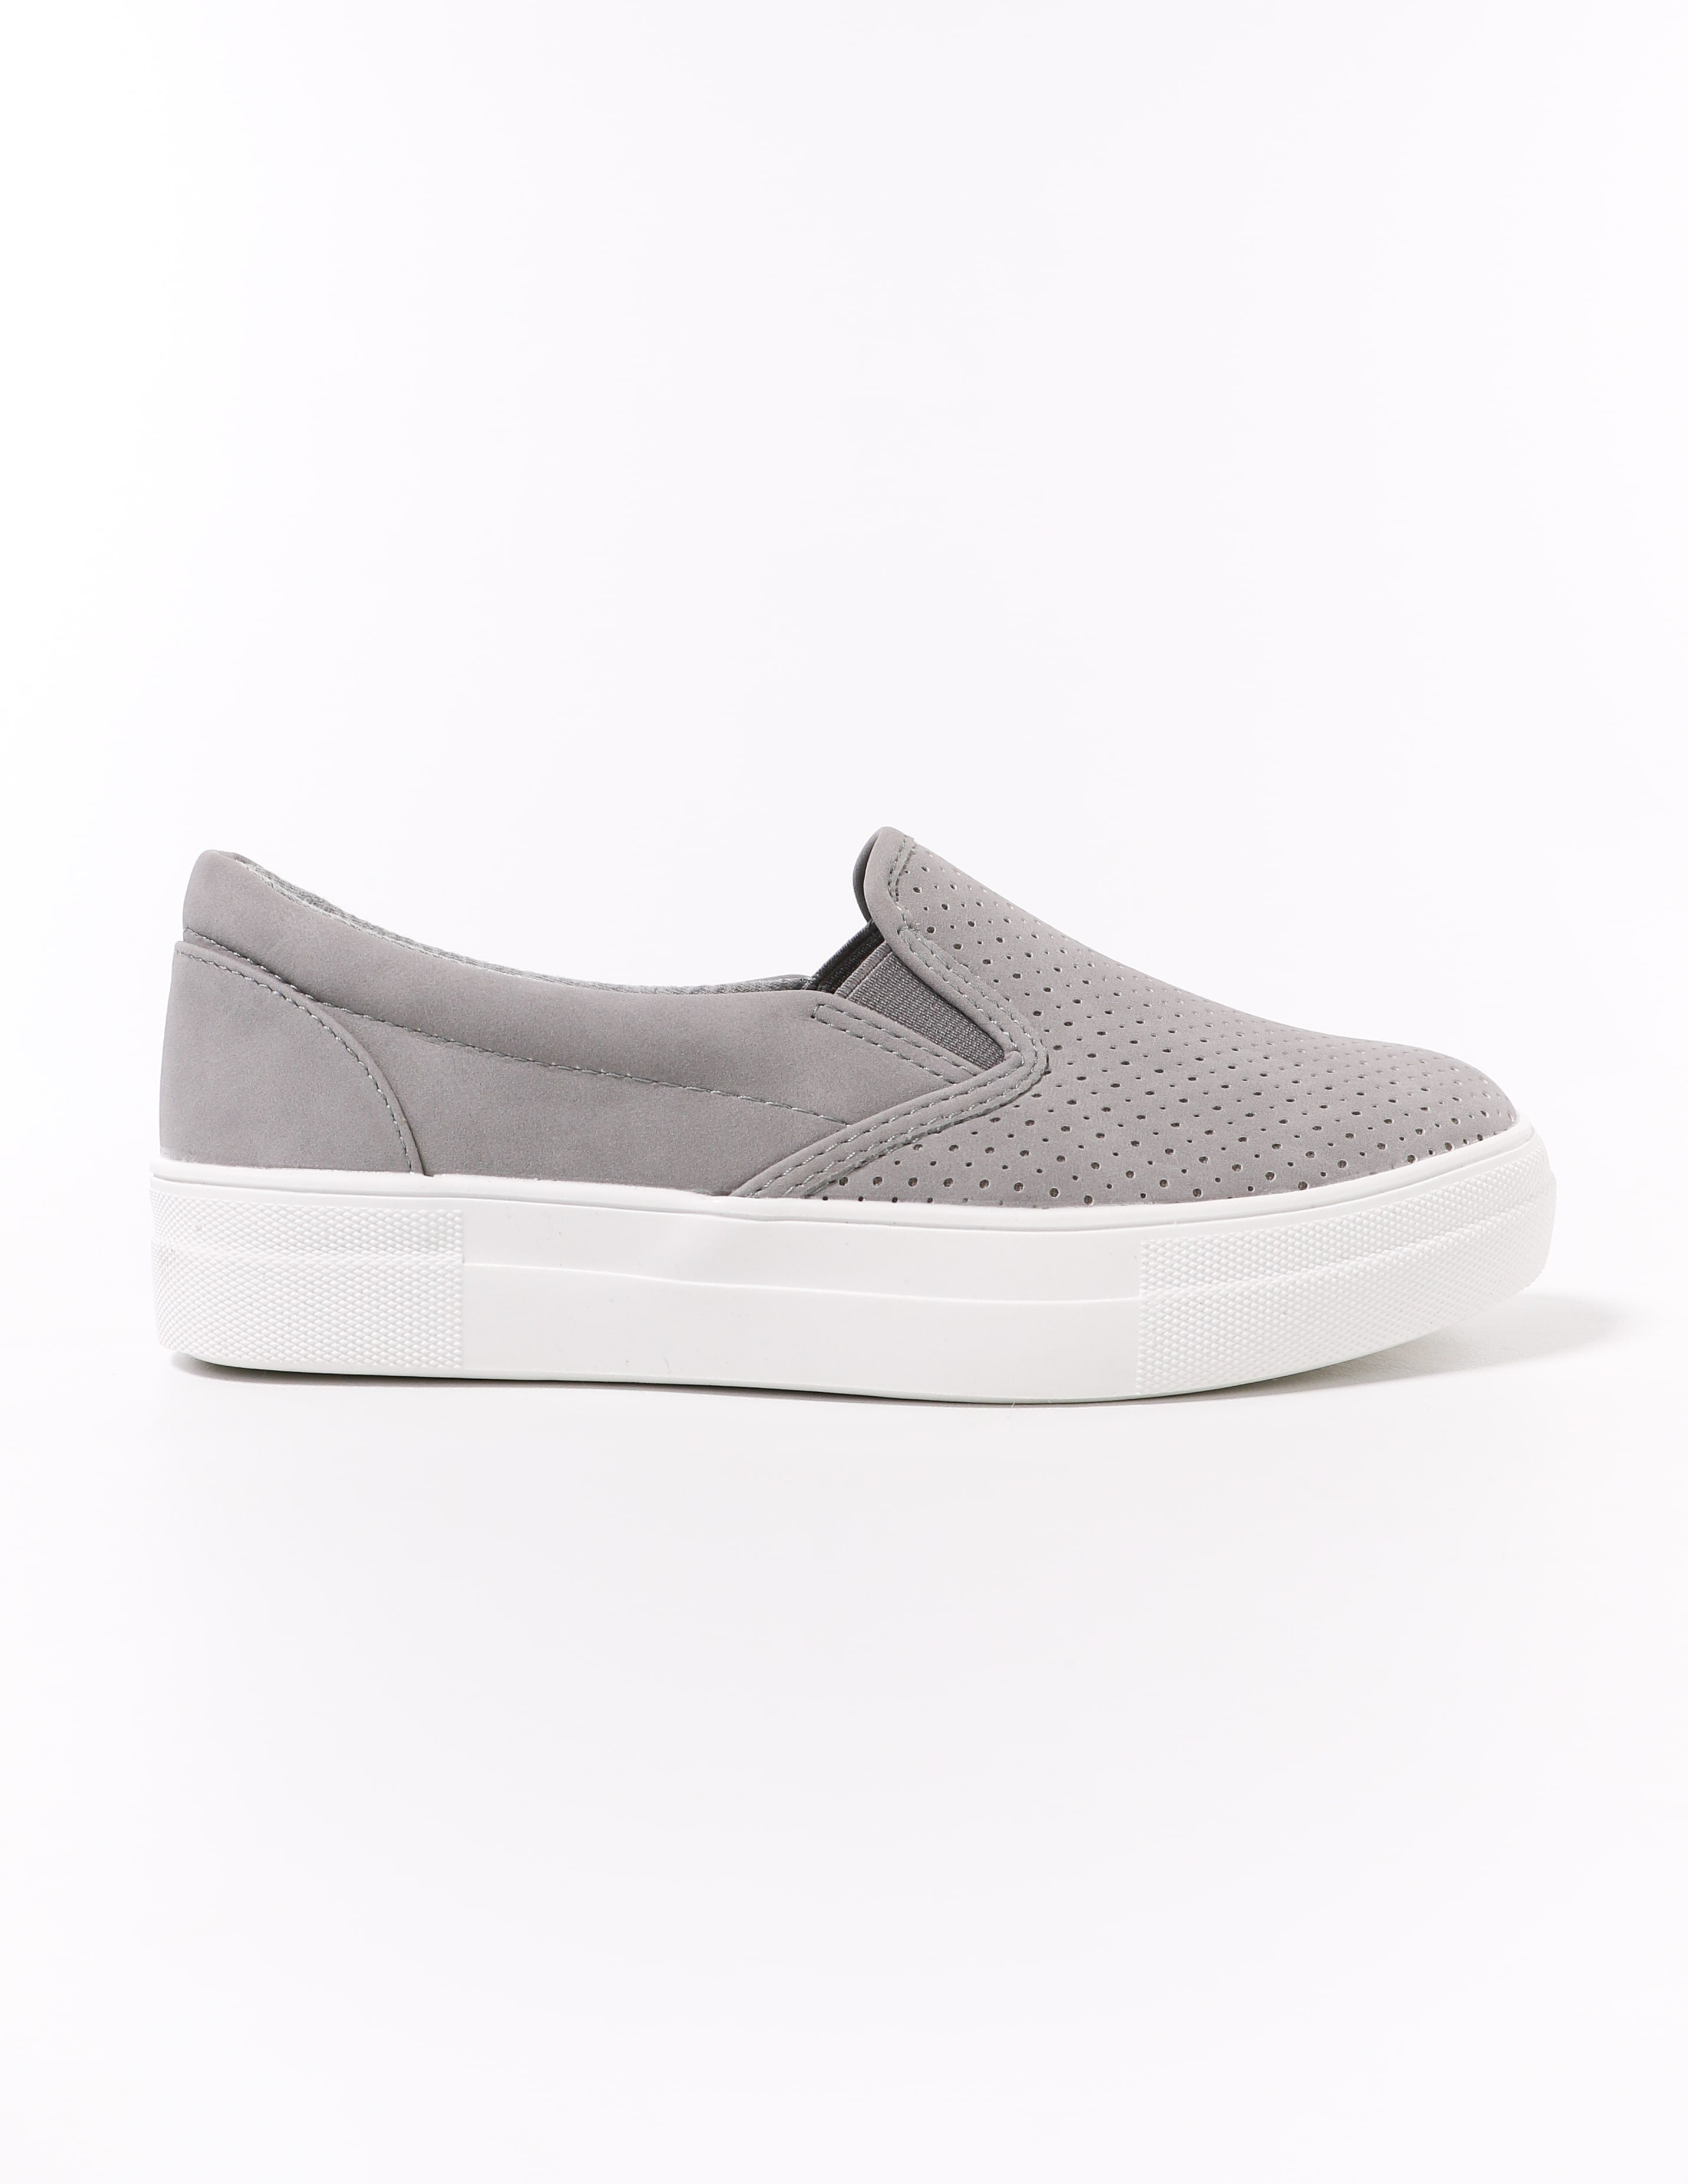 side of the grey perf every penny perforated sneaker - elle bleu shoes